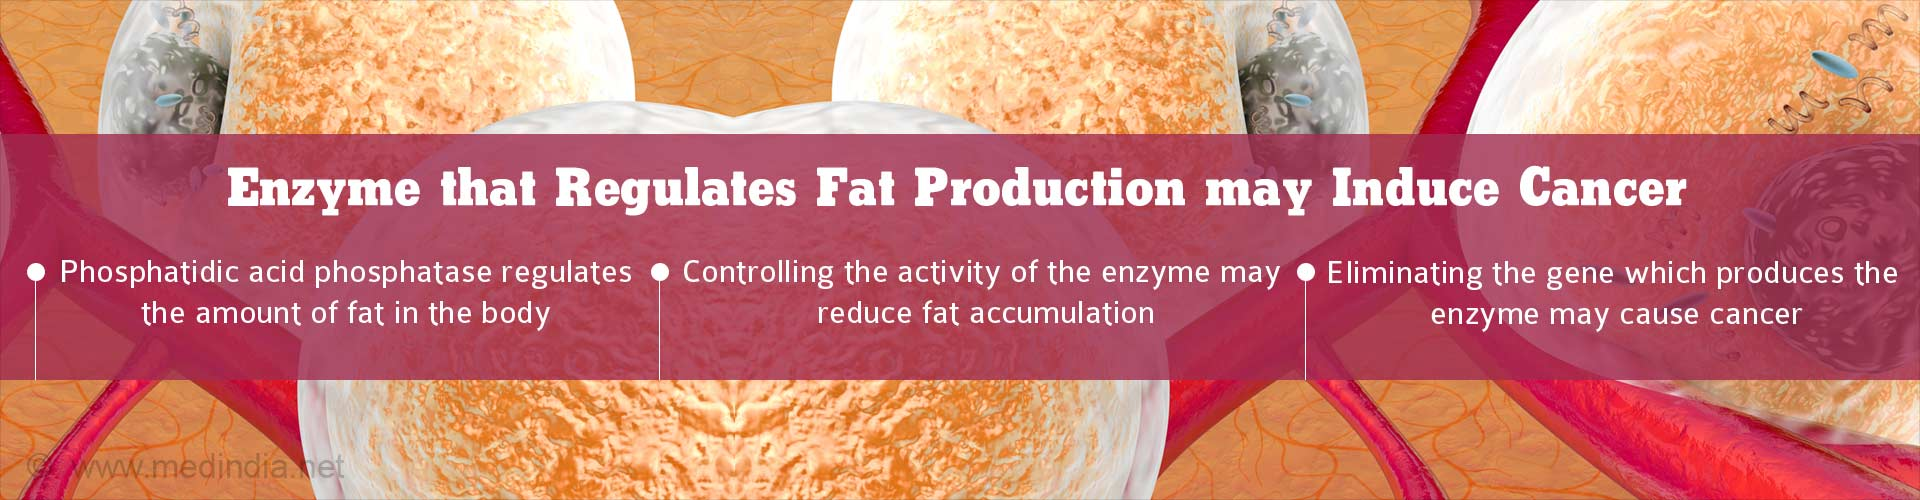 Enzyme that regulates fat production may induce cancer